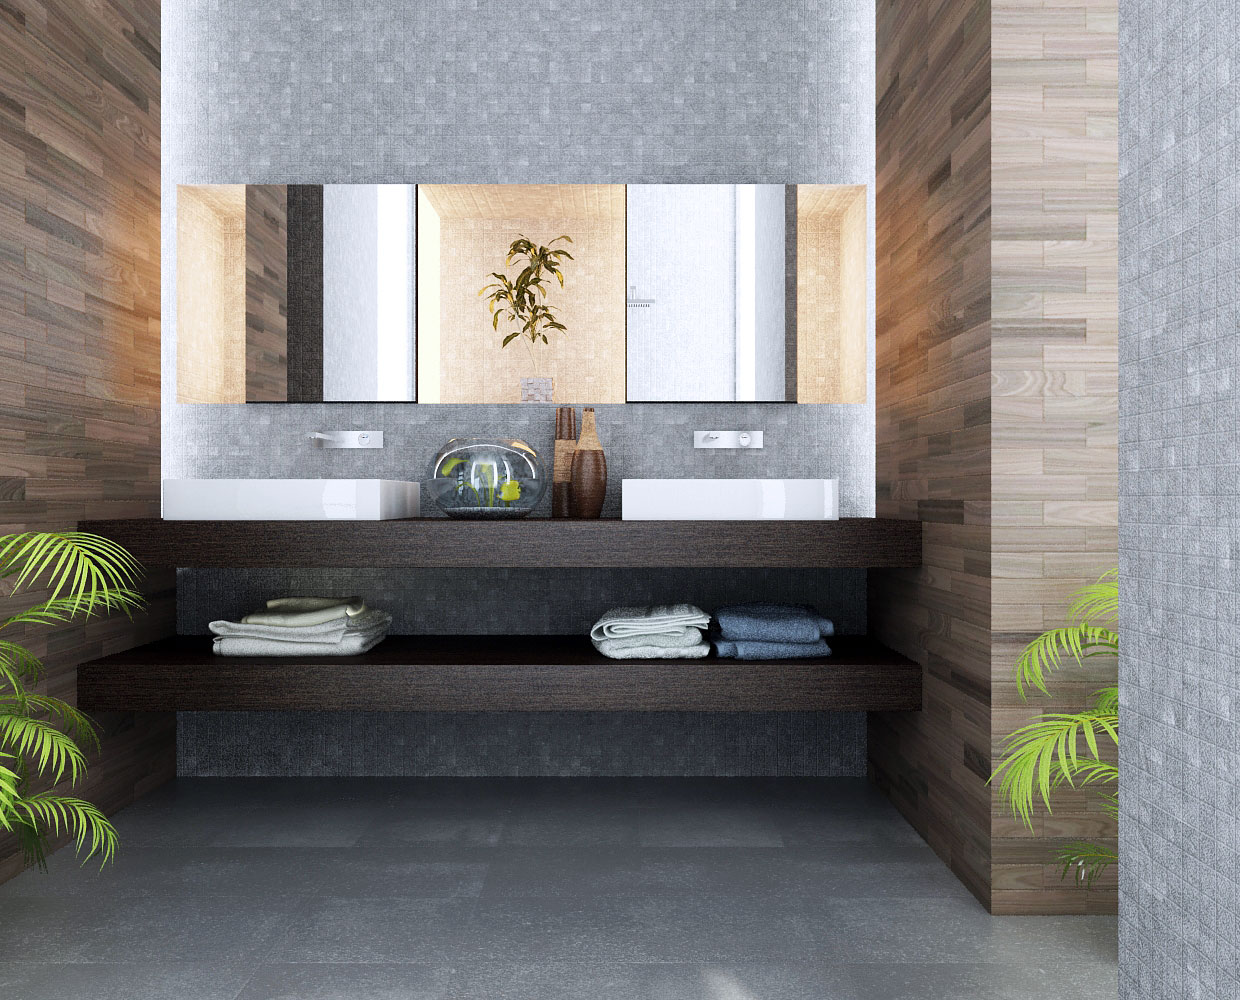 Outstanding Modern Bathroom Design 1240 x 1000 · 298 kB · jpeg